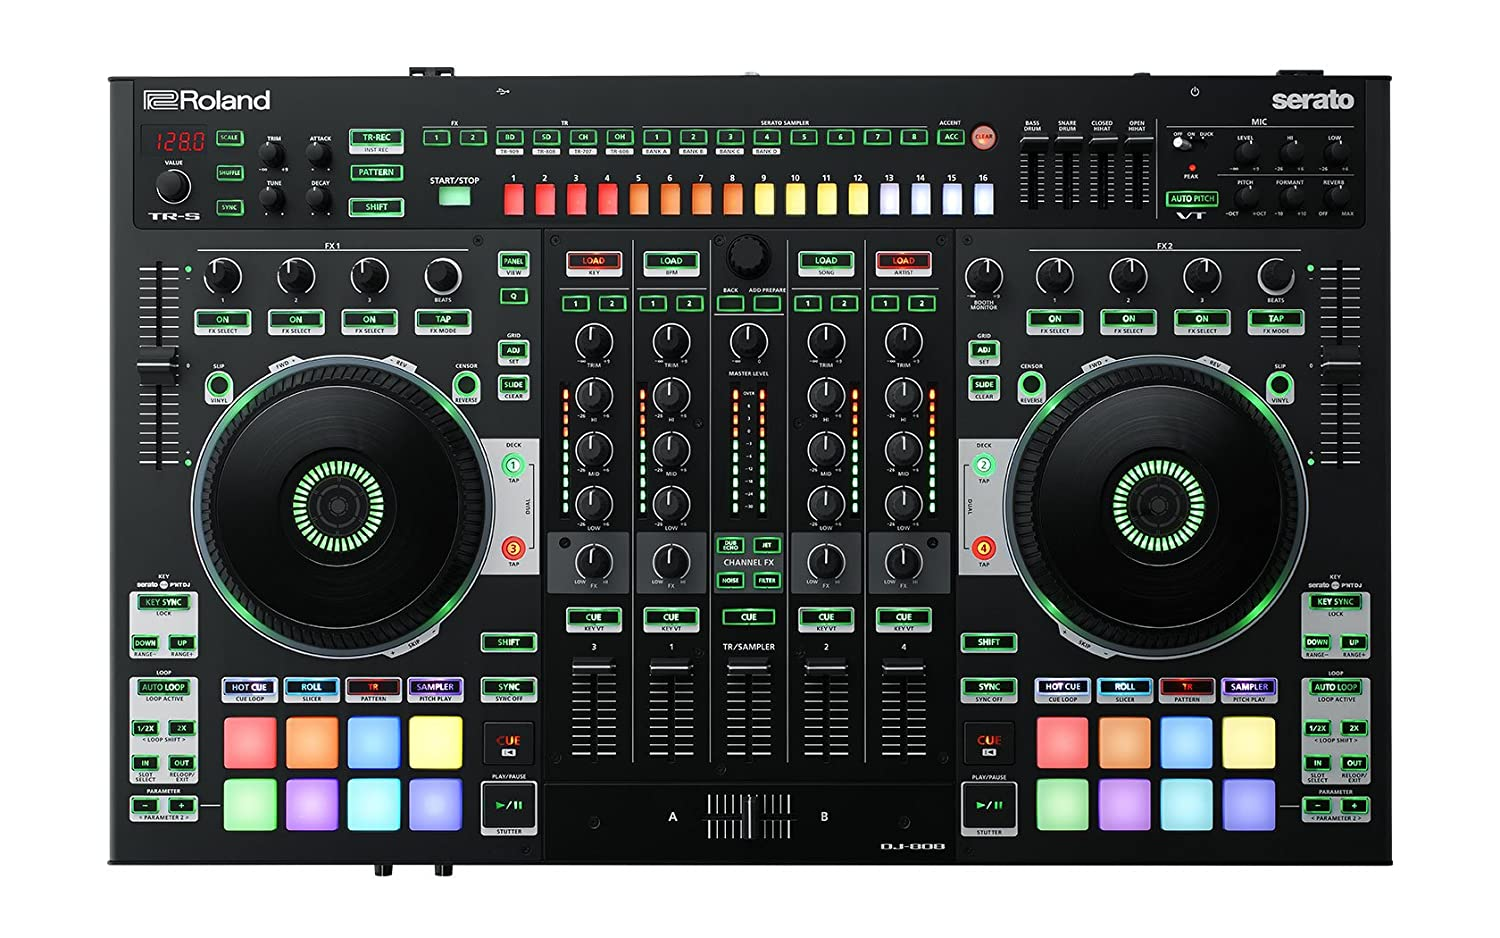 Roland Four-channel, Two-Deck Serato DJ Controller Black Friday Deals 2020